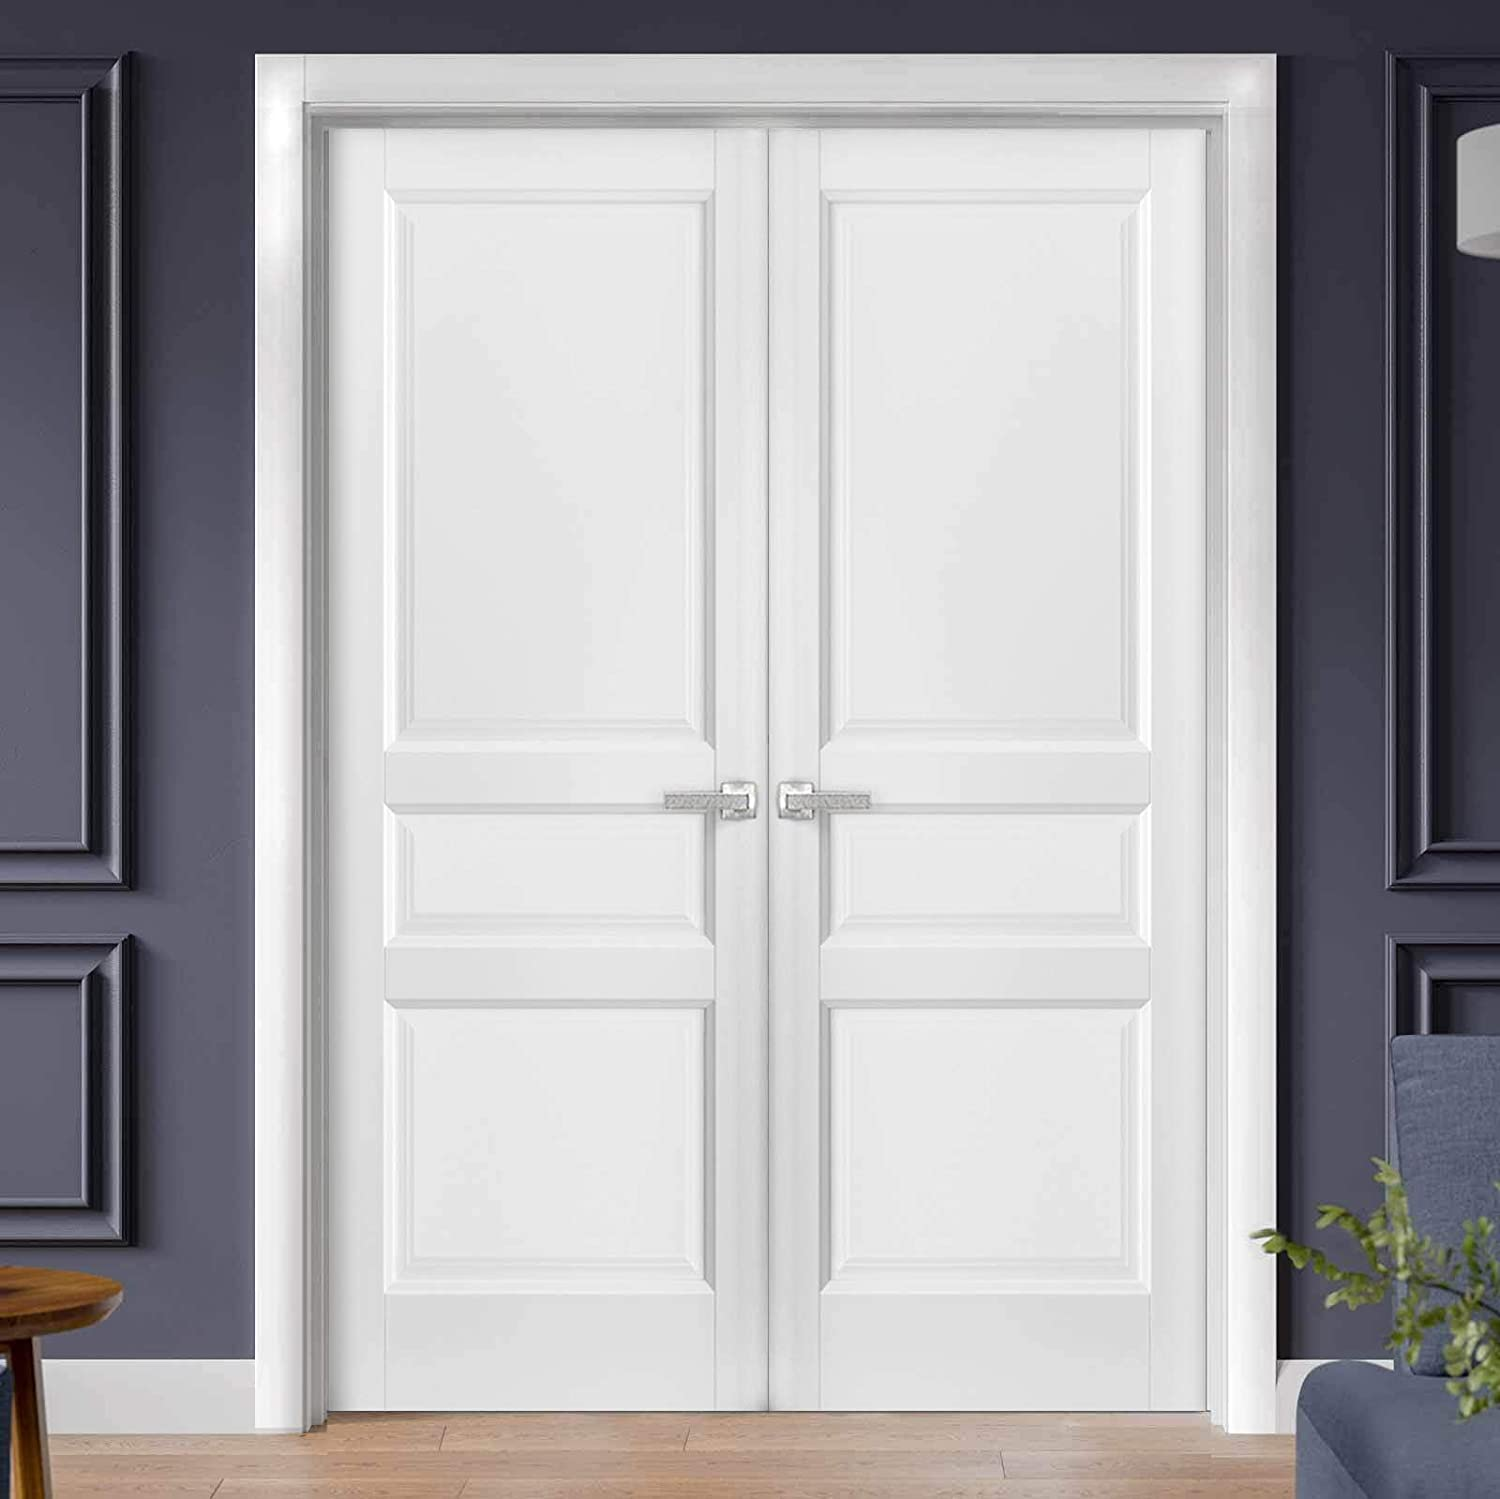 French Double Panel Solid Doors 36 x 80 with Hardware Lucia 31 Matte White Bathroom Bedroom Interior Sturdy Door Pre-Hung Panel Frame Trims